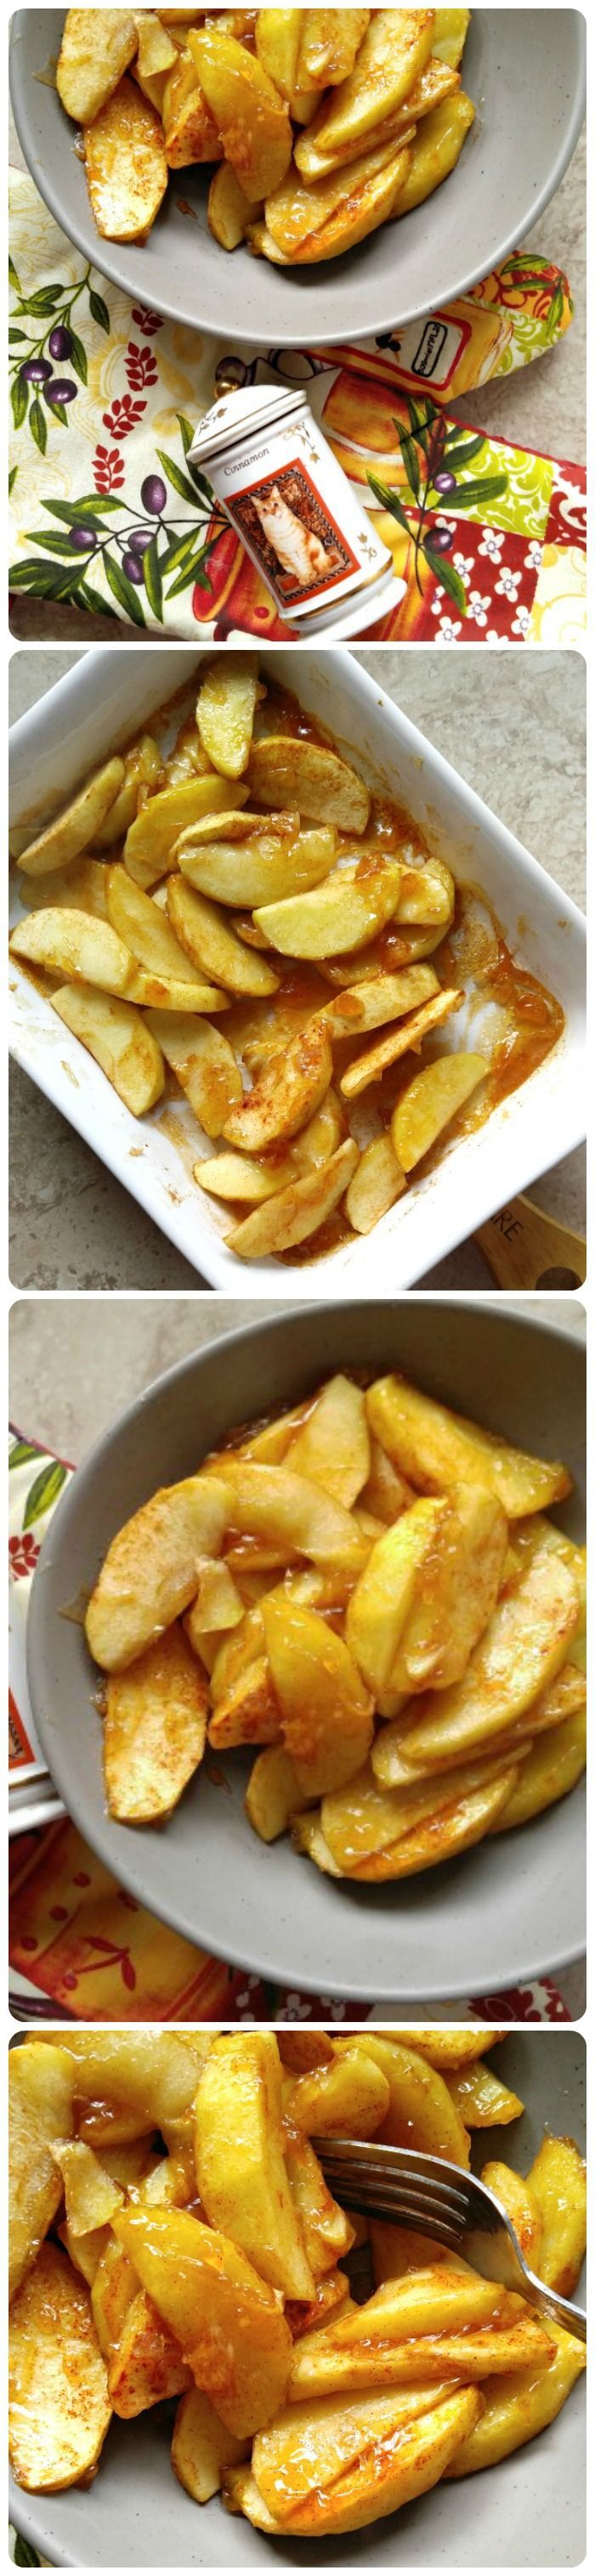 These cinnamon baked apple slices are the perfect side dish to go with pork chops. They are sweet but not overly so and perfectly tender. #bakedapples #applerecipes